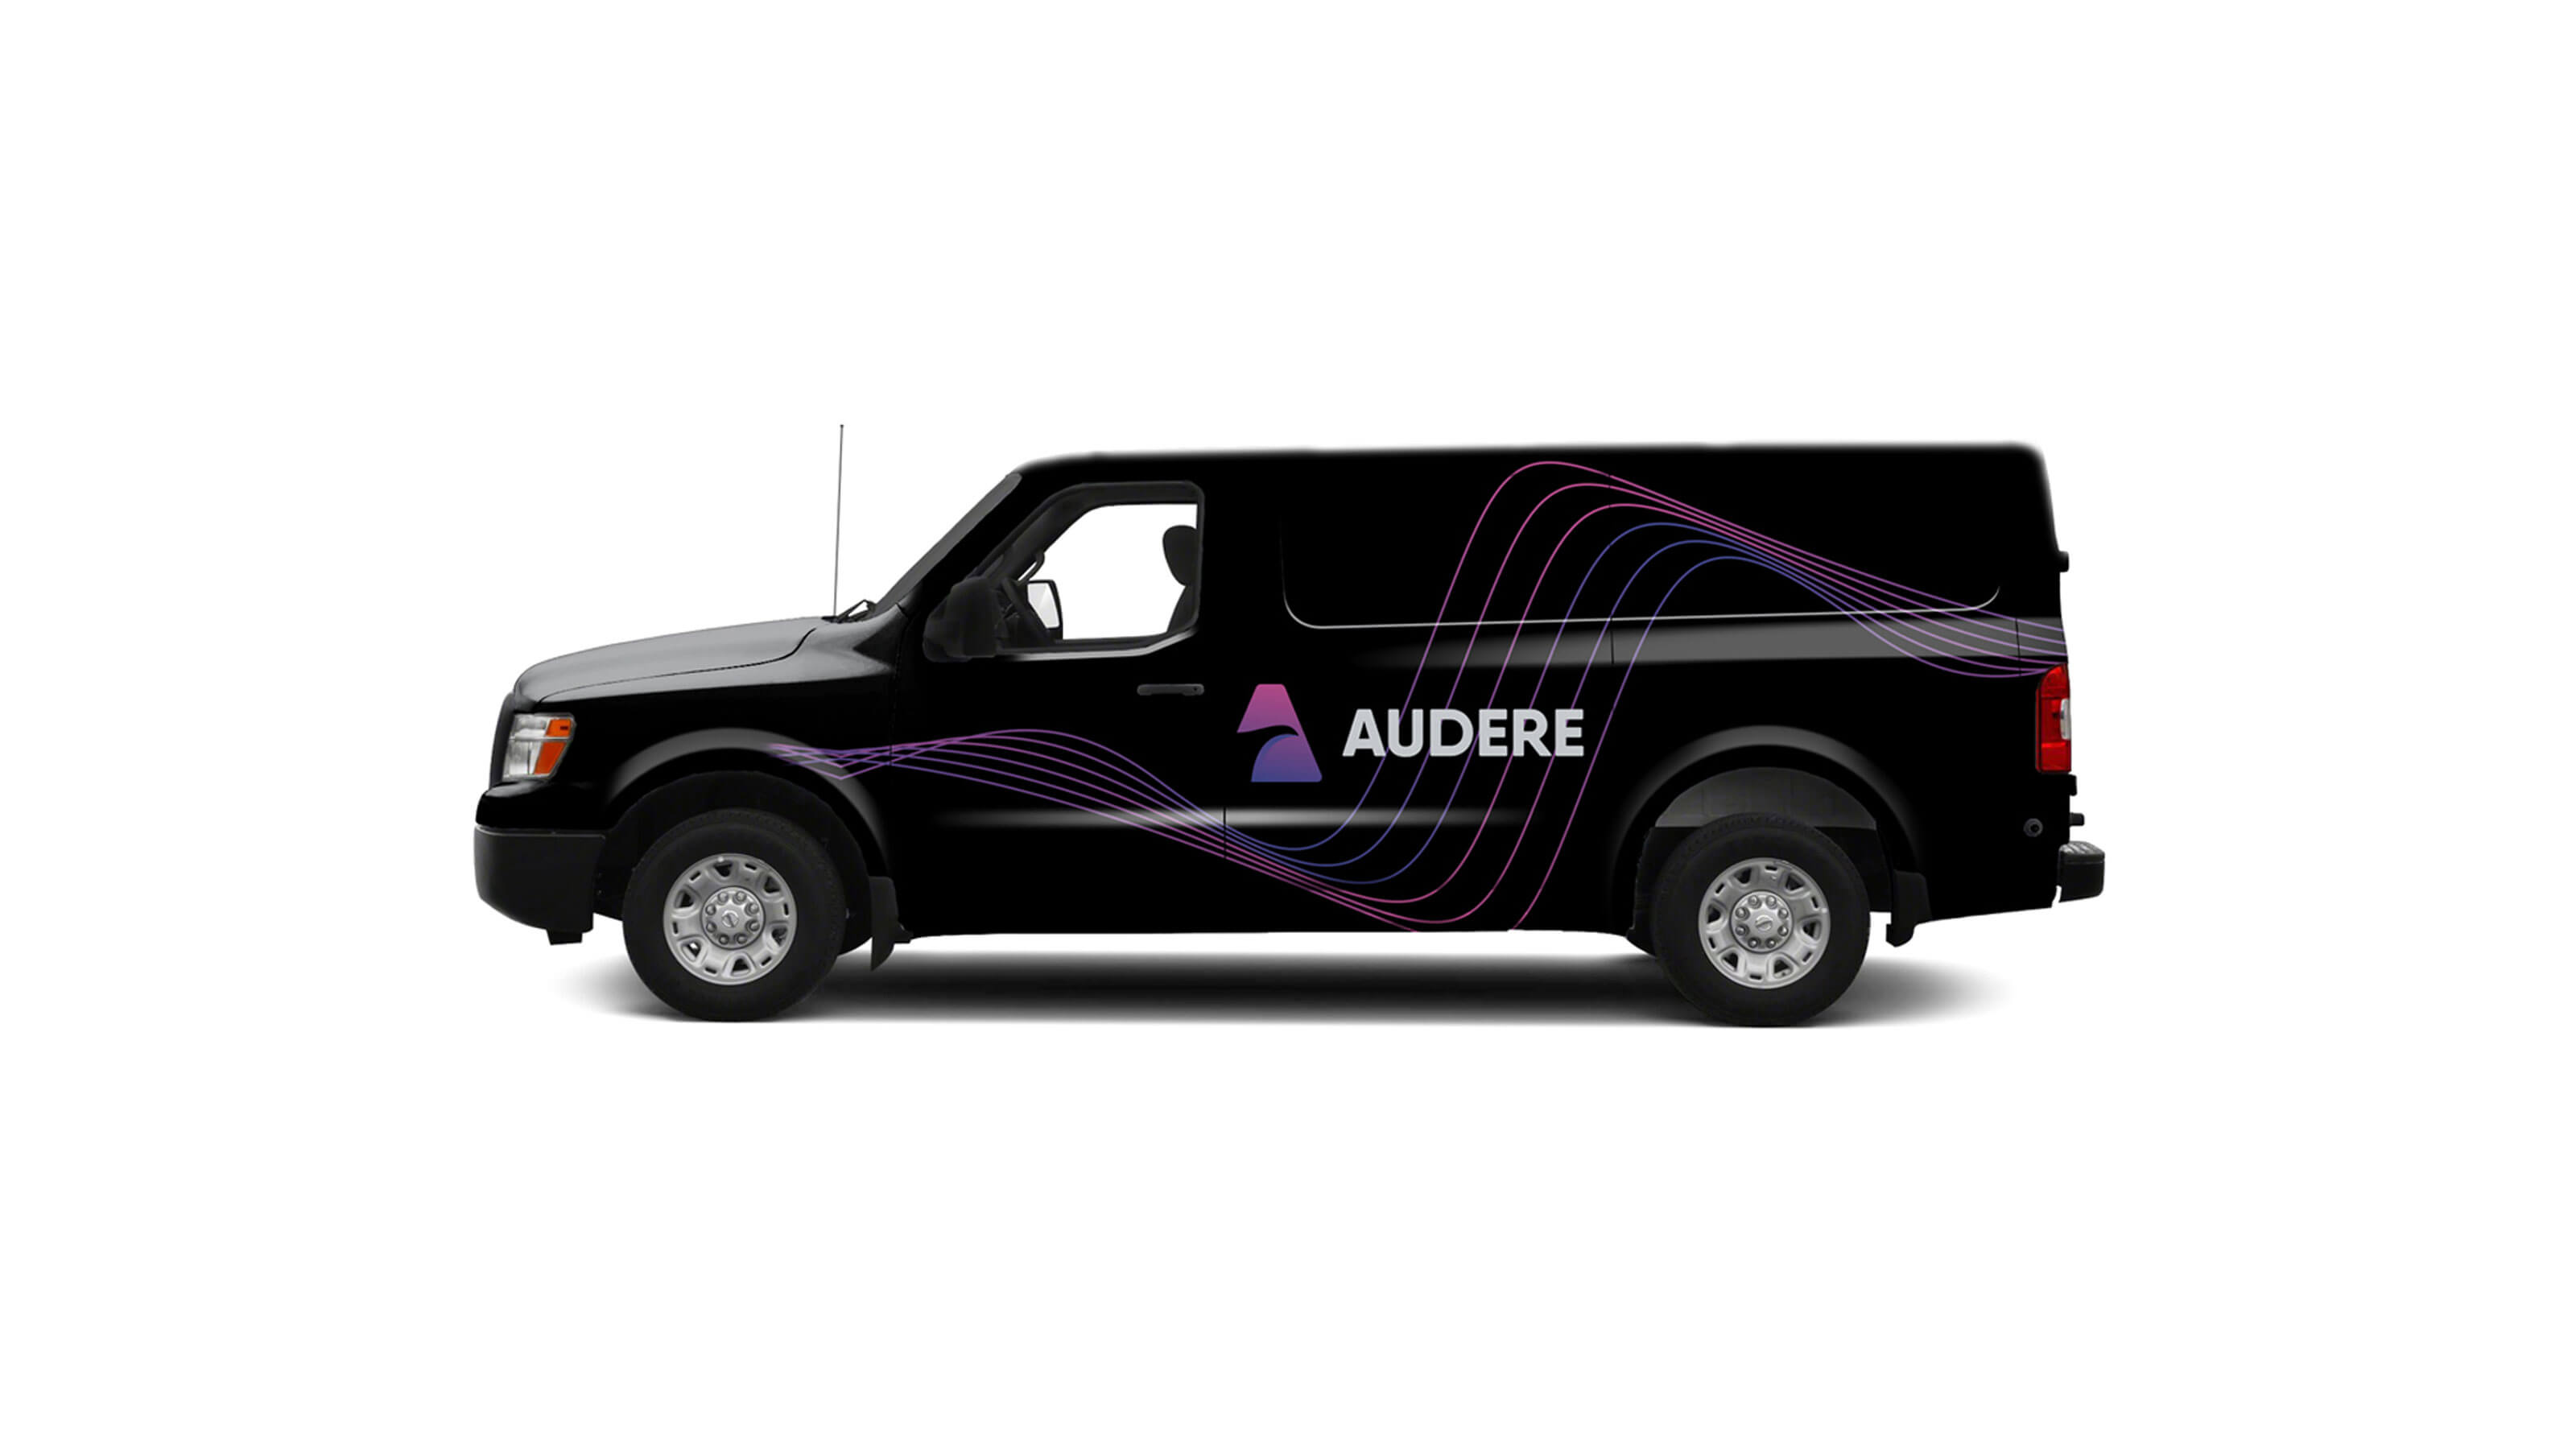 Audere-vehicle-branding